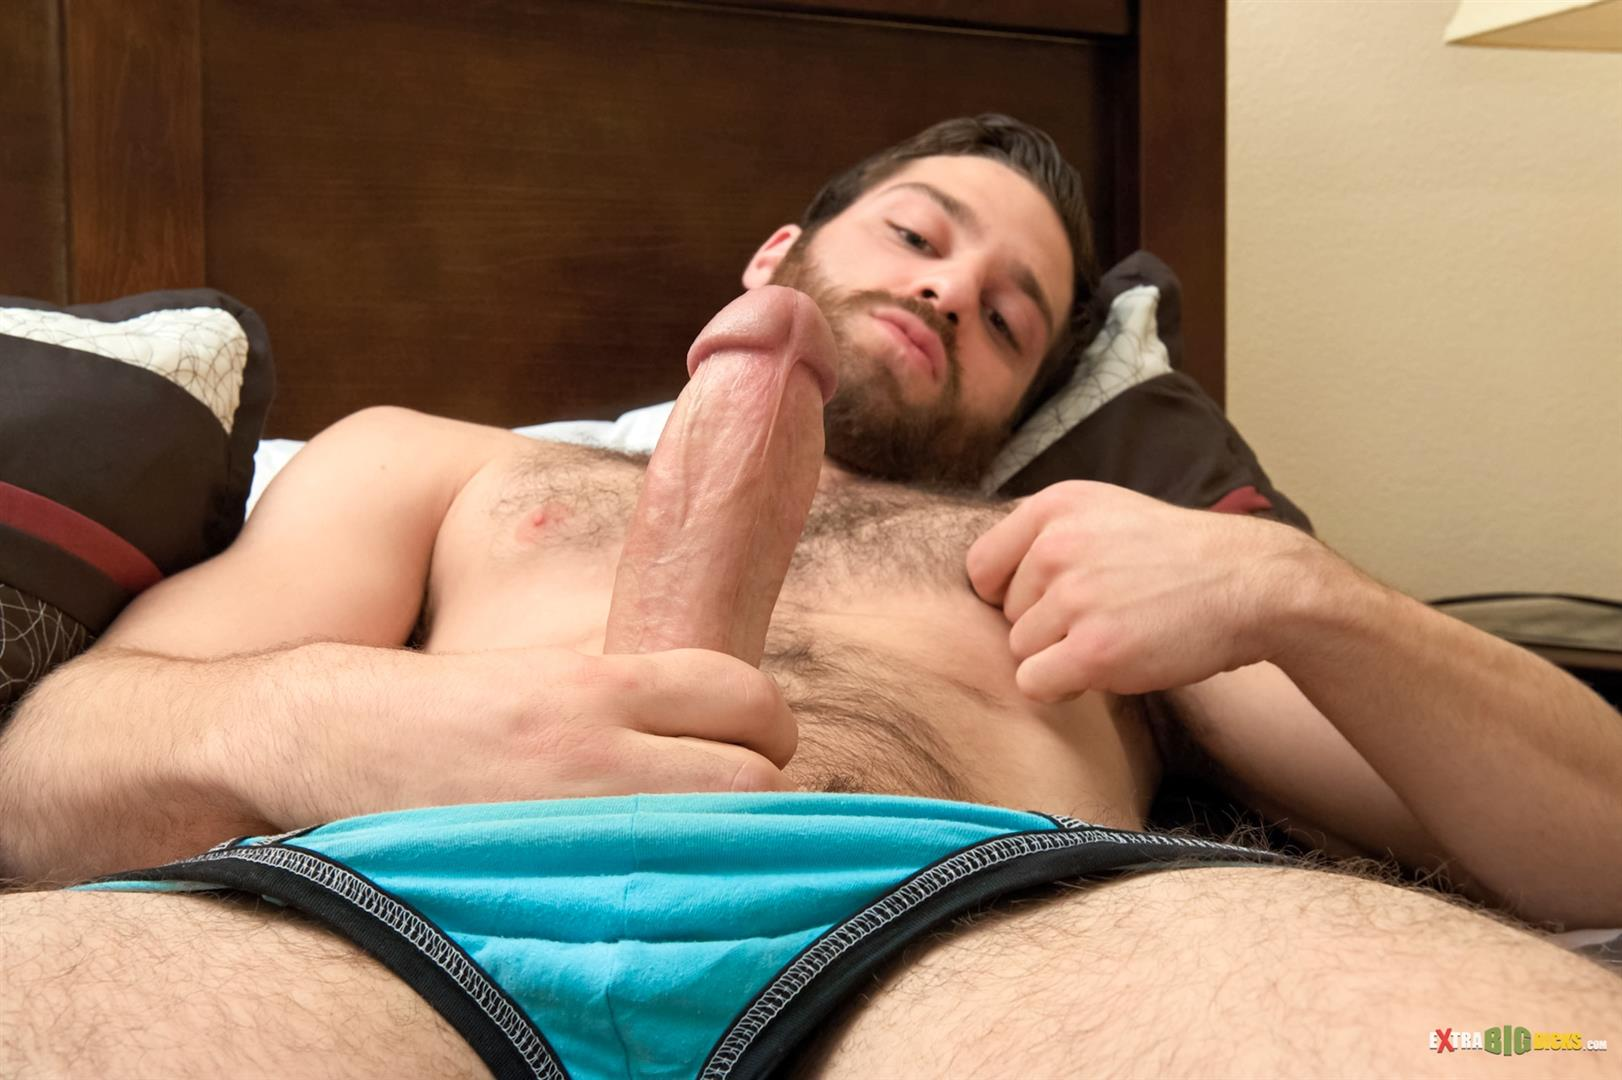 Boy jerk off galleries